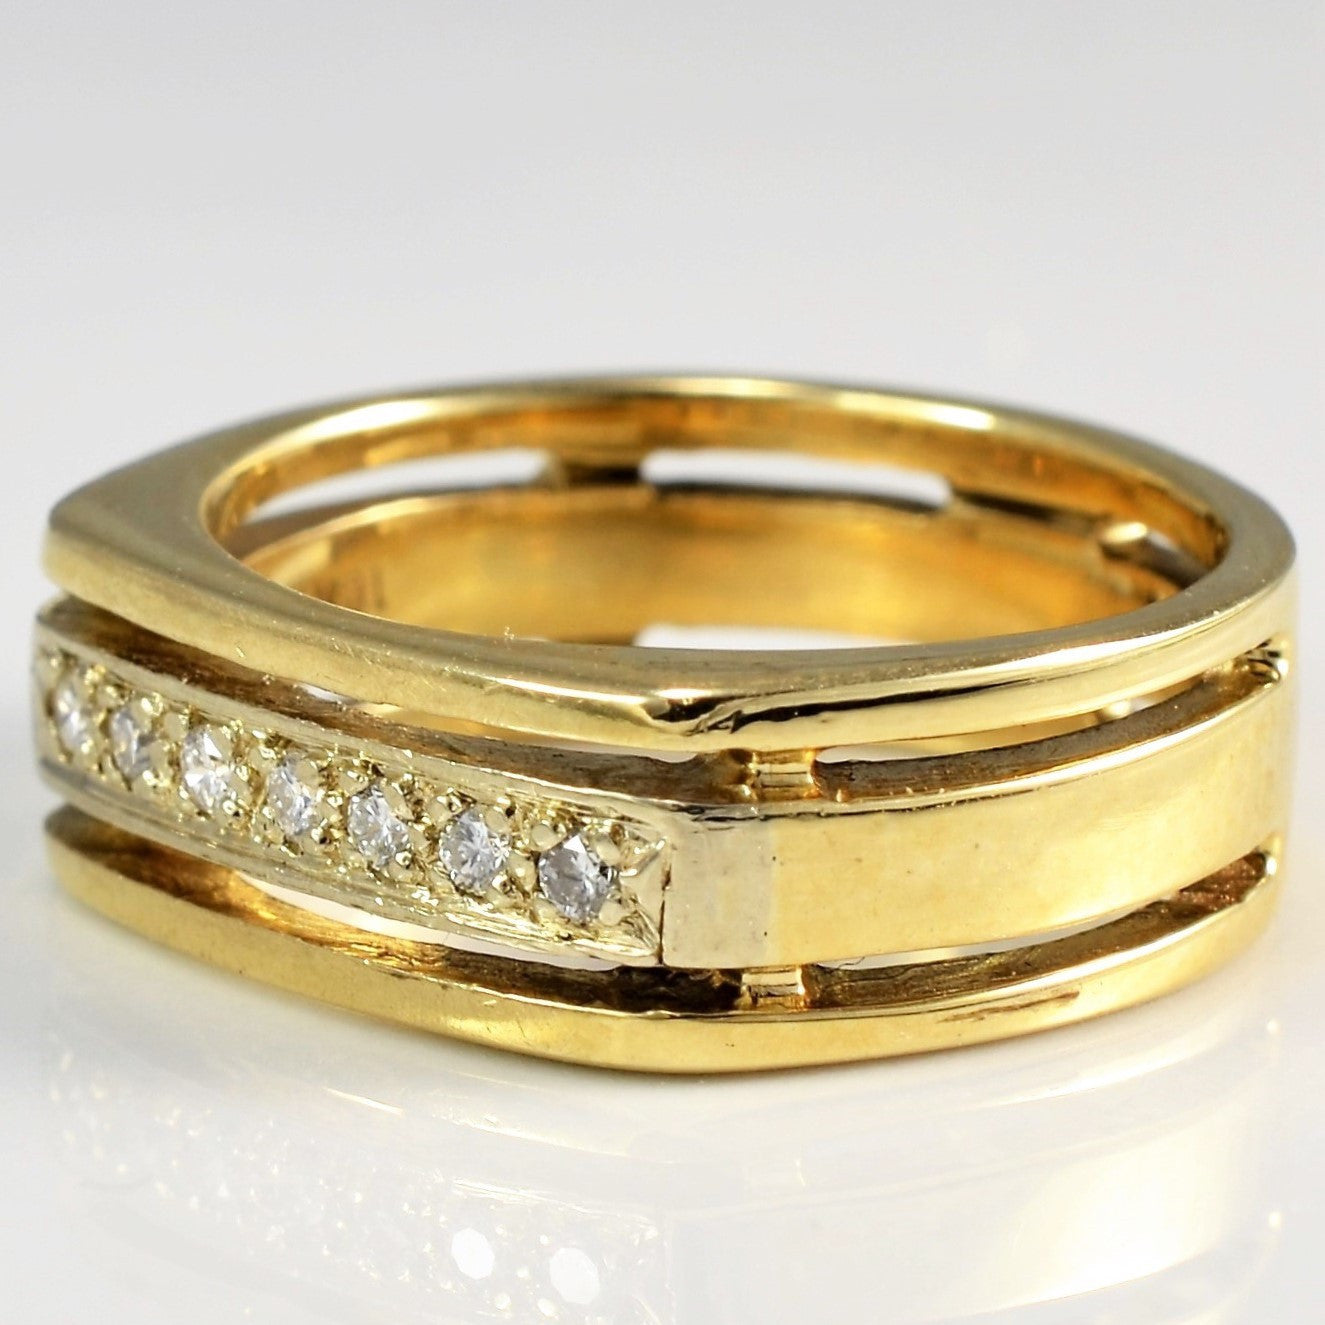 Yellow Gold Unisex Diamond Ring | 0.10 ctw, SZ 6.75 |